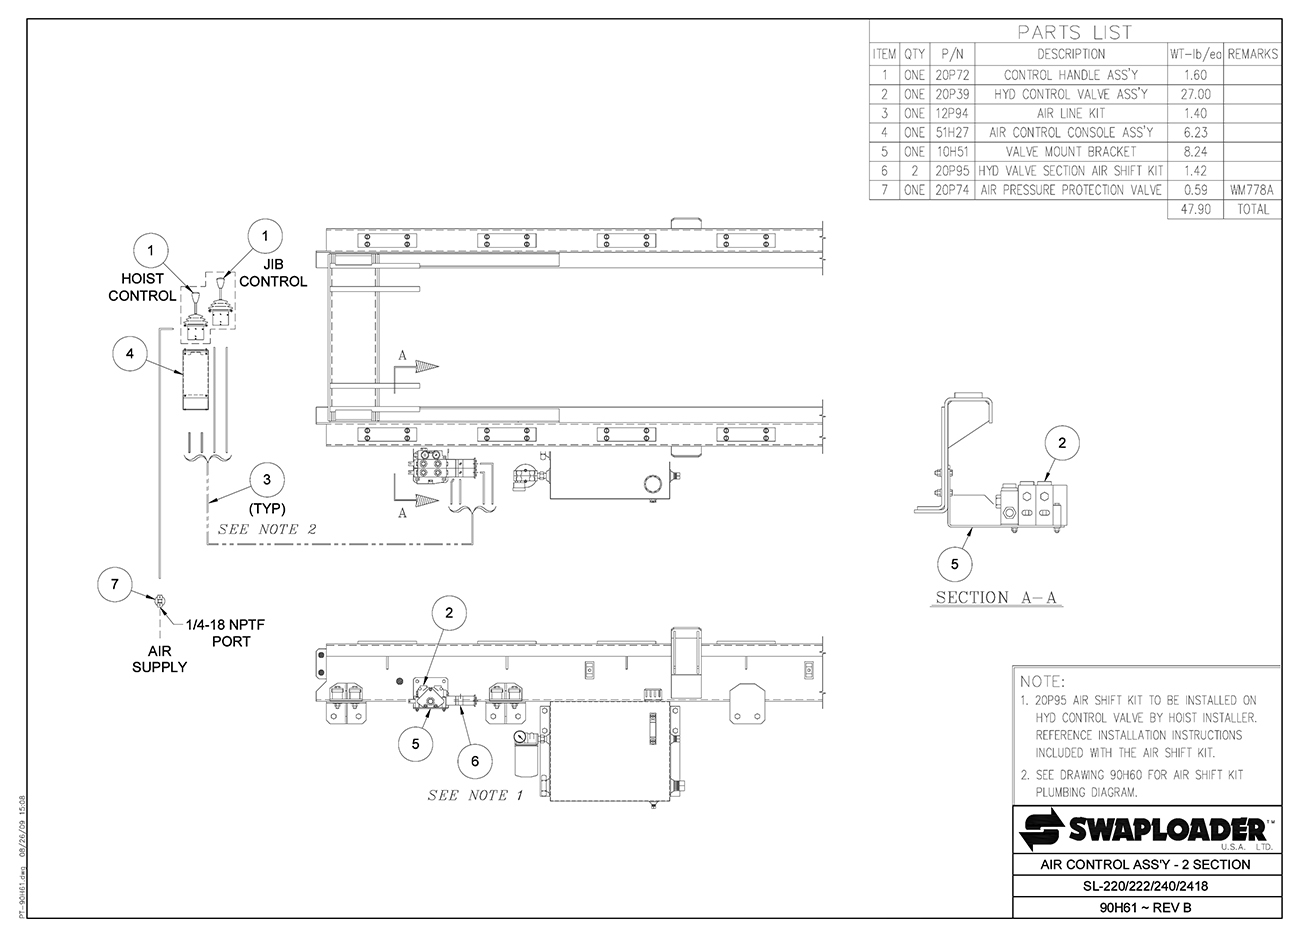 Swaploader 200 Series Sl 240 Hooklift Diagrams Tailgate Salt Spreader Wiring Diagram Air Control Assembly 2 Section